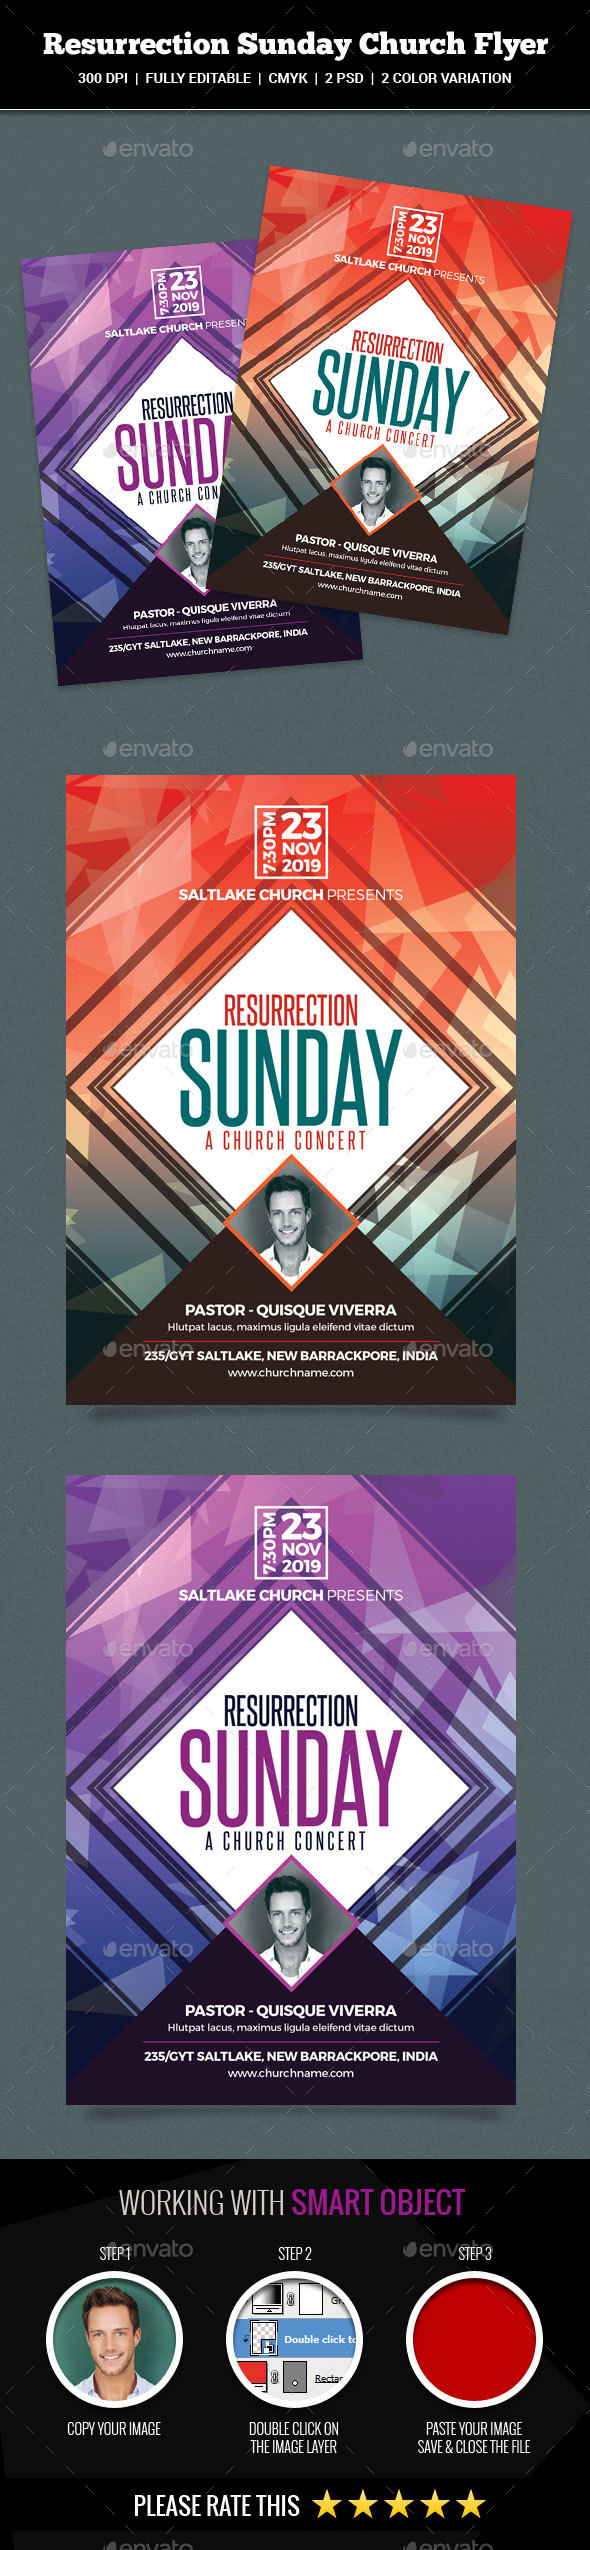 Resurrection Sunday Church Flyer - Church Flyers